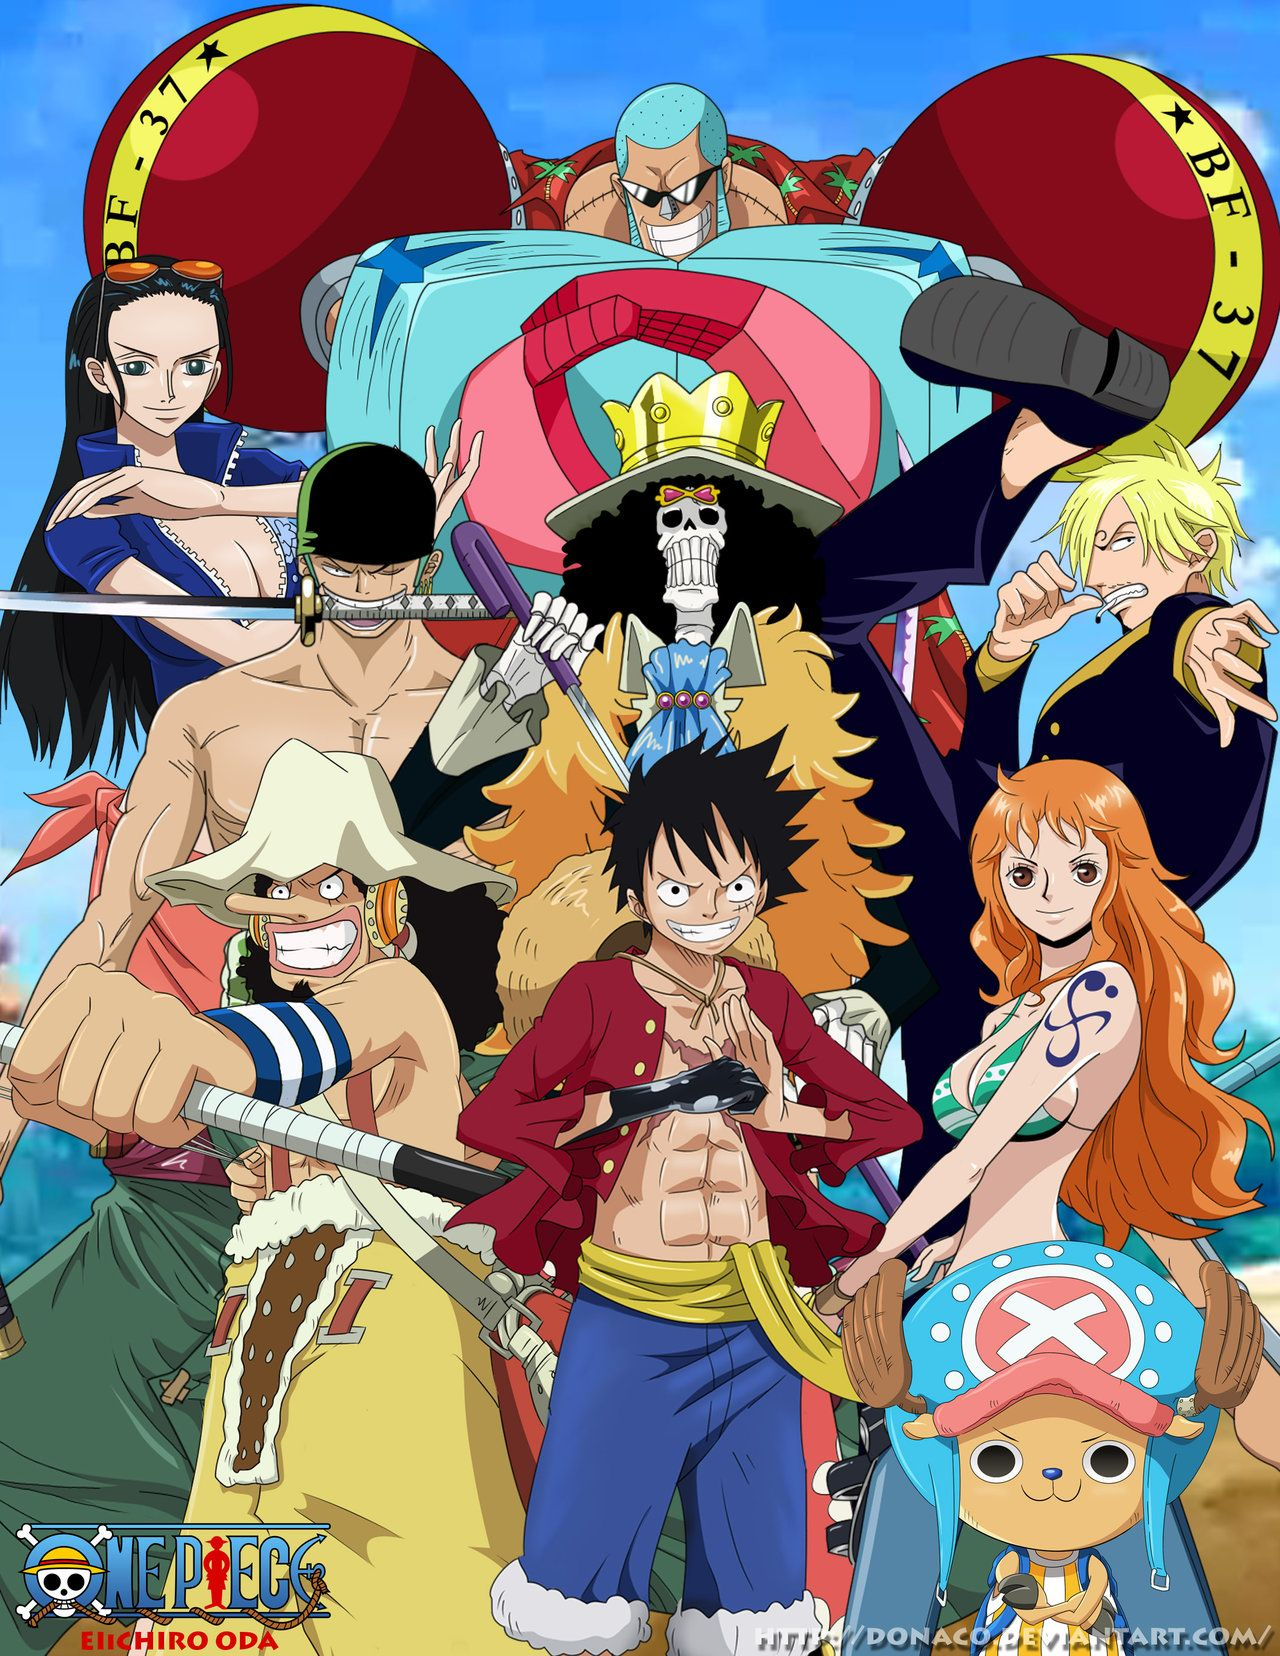 ONE PIECE CIRCLE OF CHARACTERS POSTER 24x36-52975